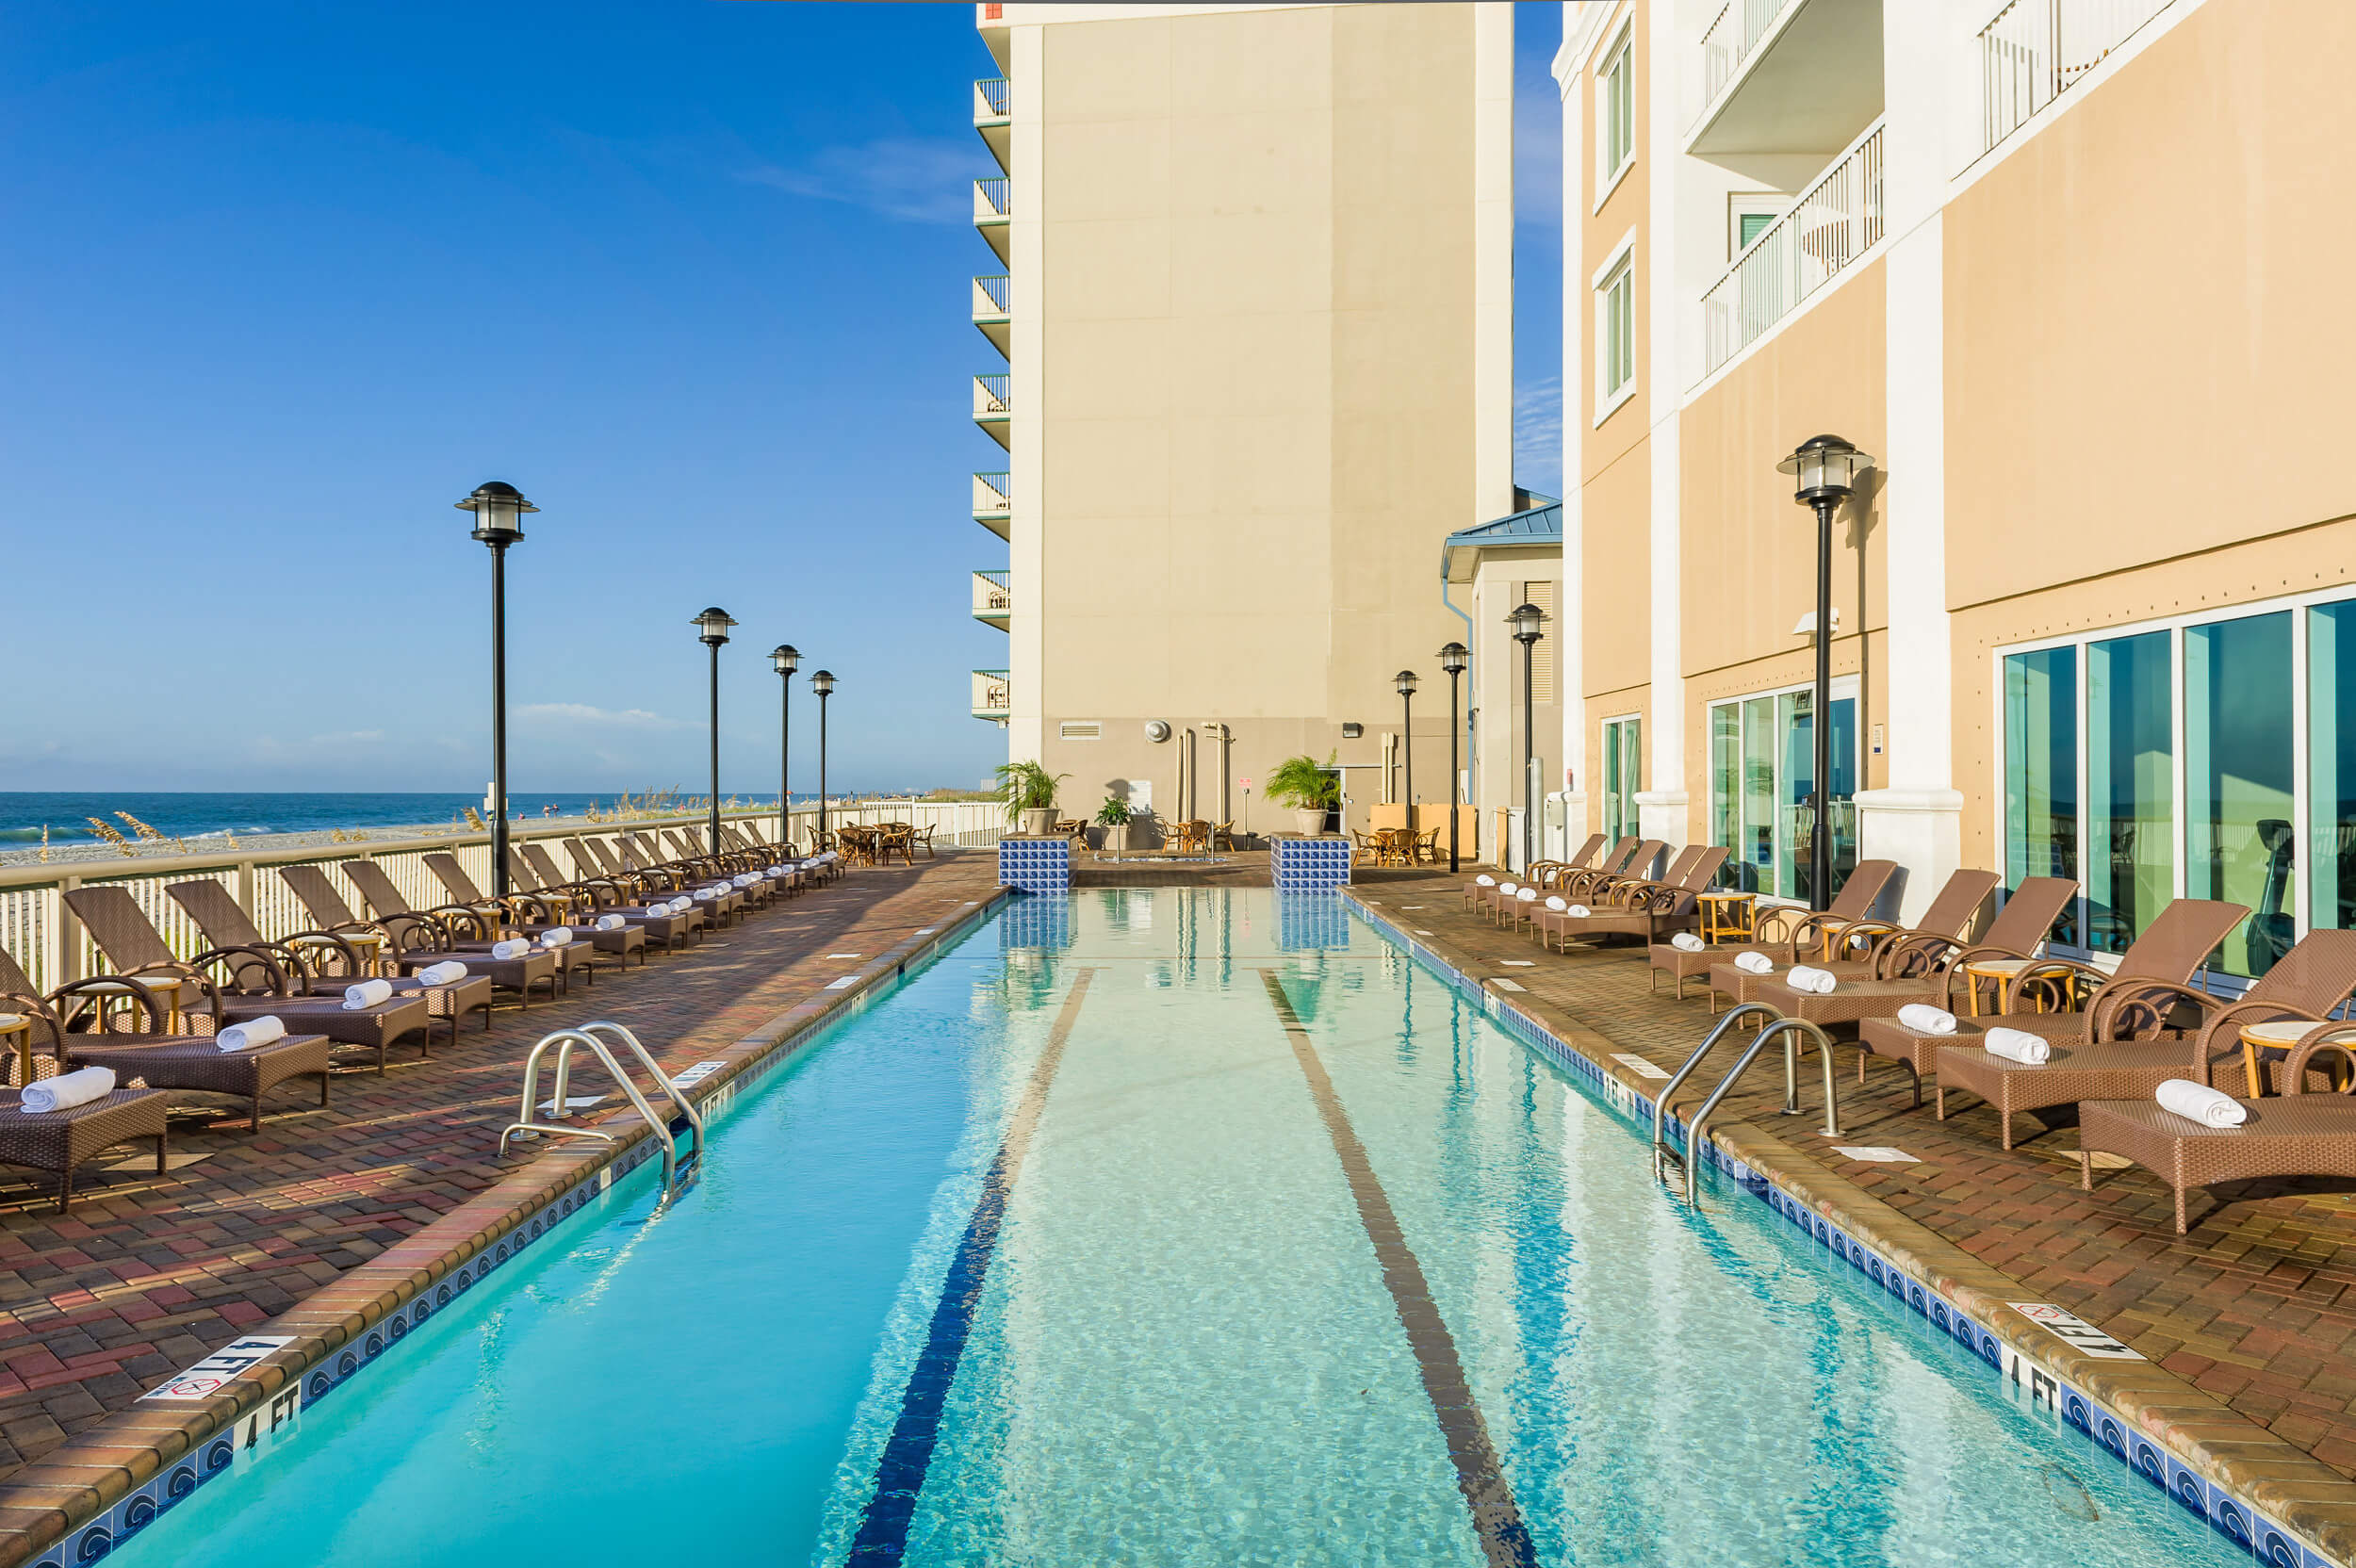 Large heated outdoor pool with lounge chairs | Westgate Myrtle Beach Oceanfront Resort